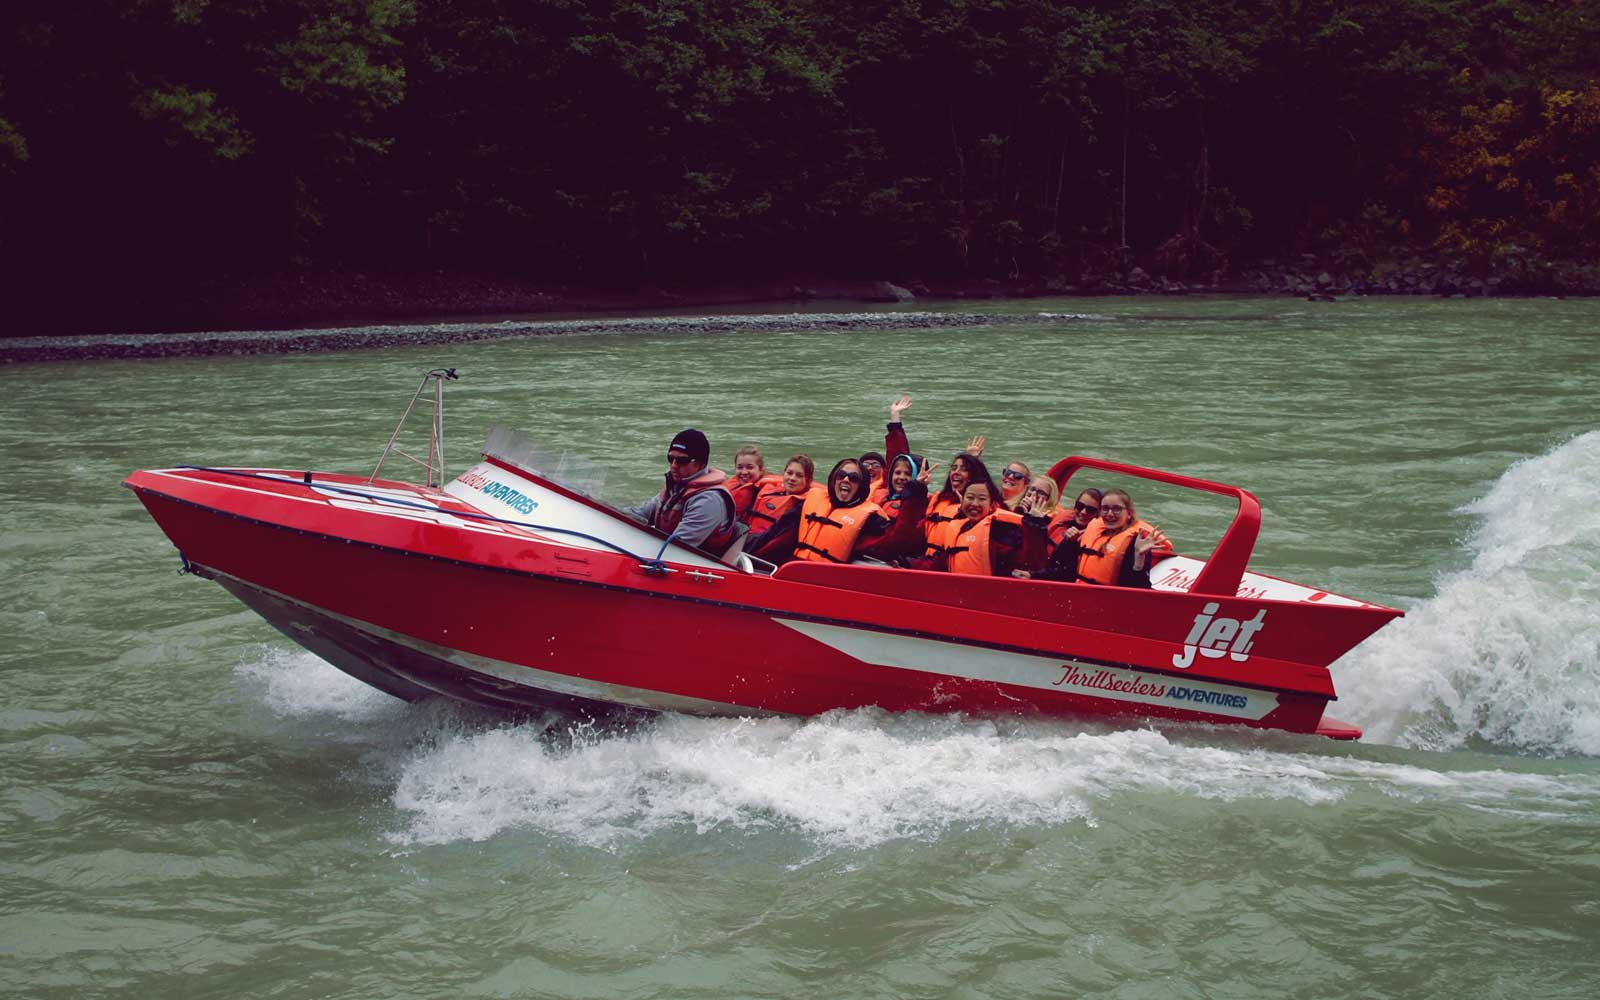 Farina in Neuseeland: Jetboating in Hanmer Springs